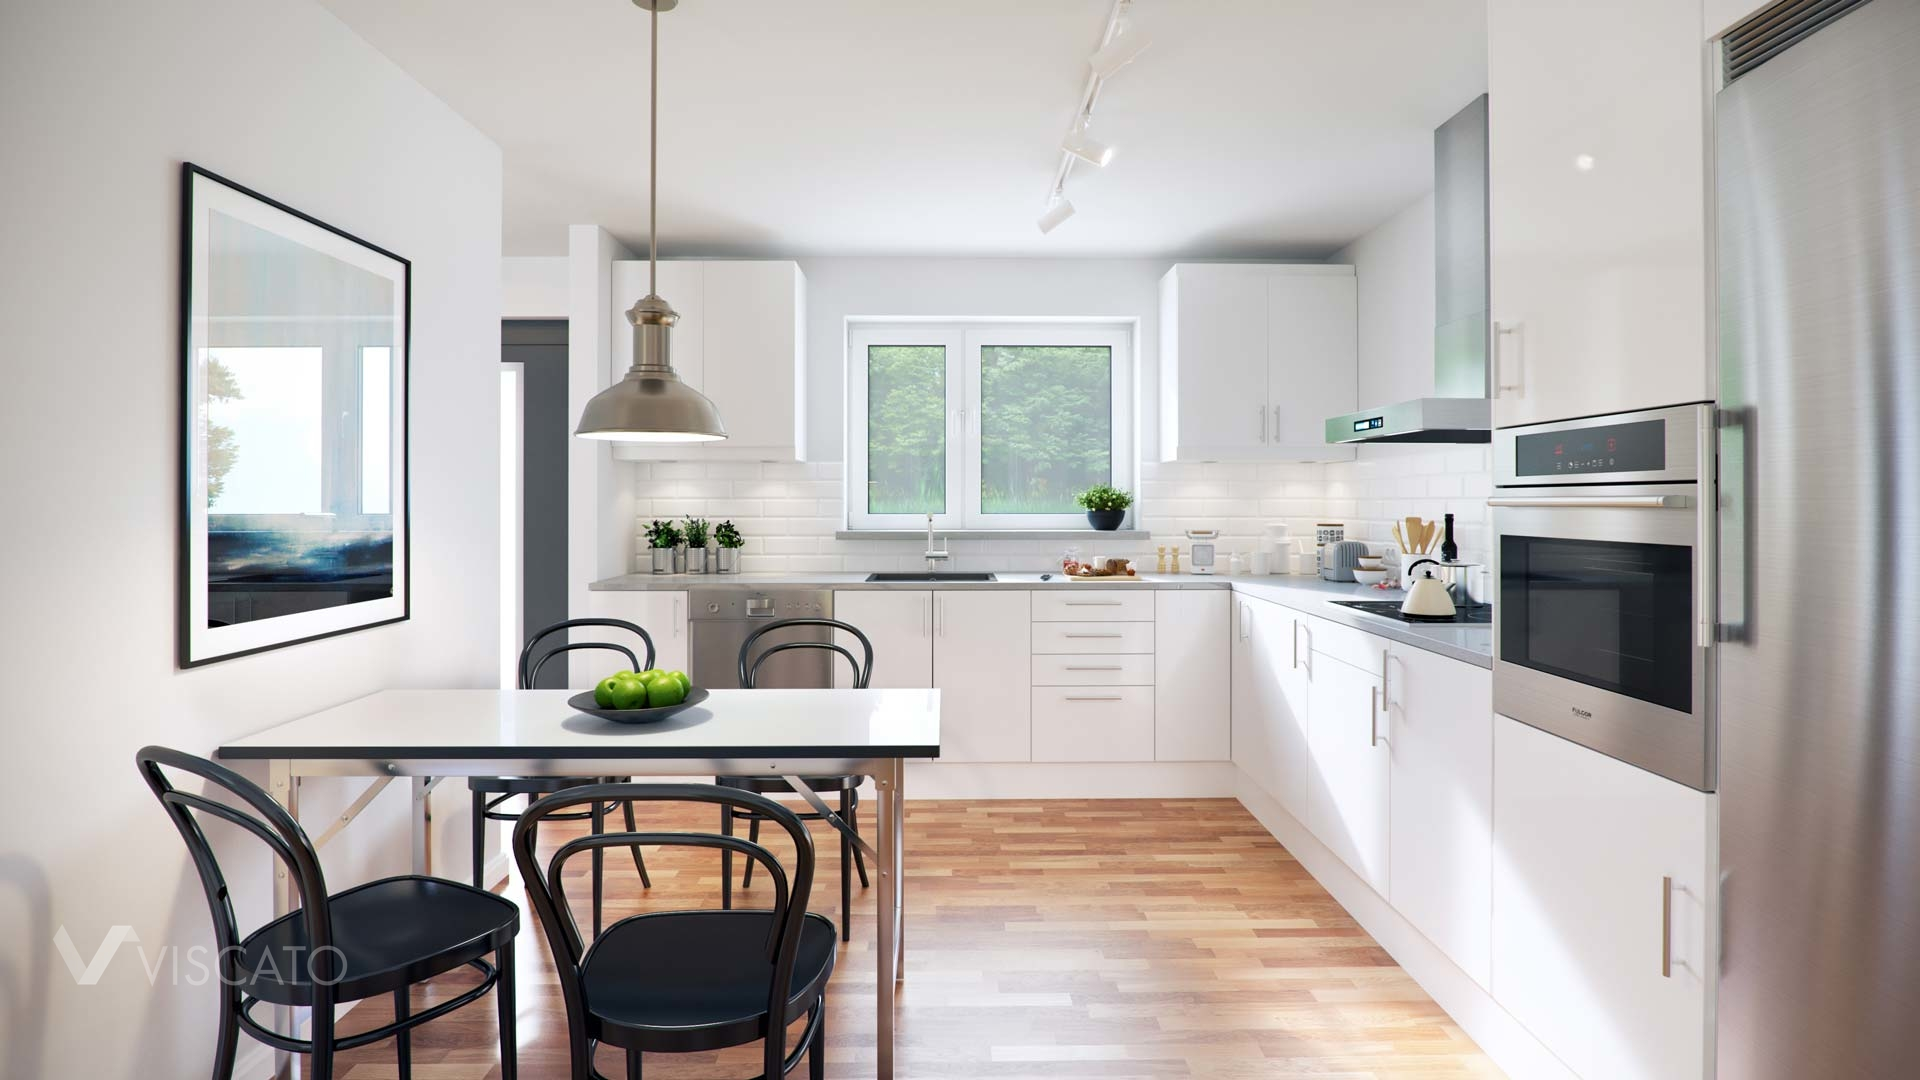 3D kitchen visualization of a house in Sweden- Viscato